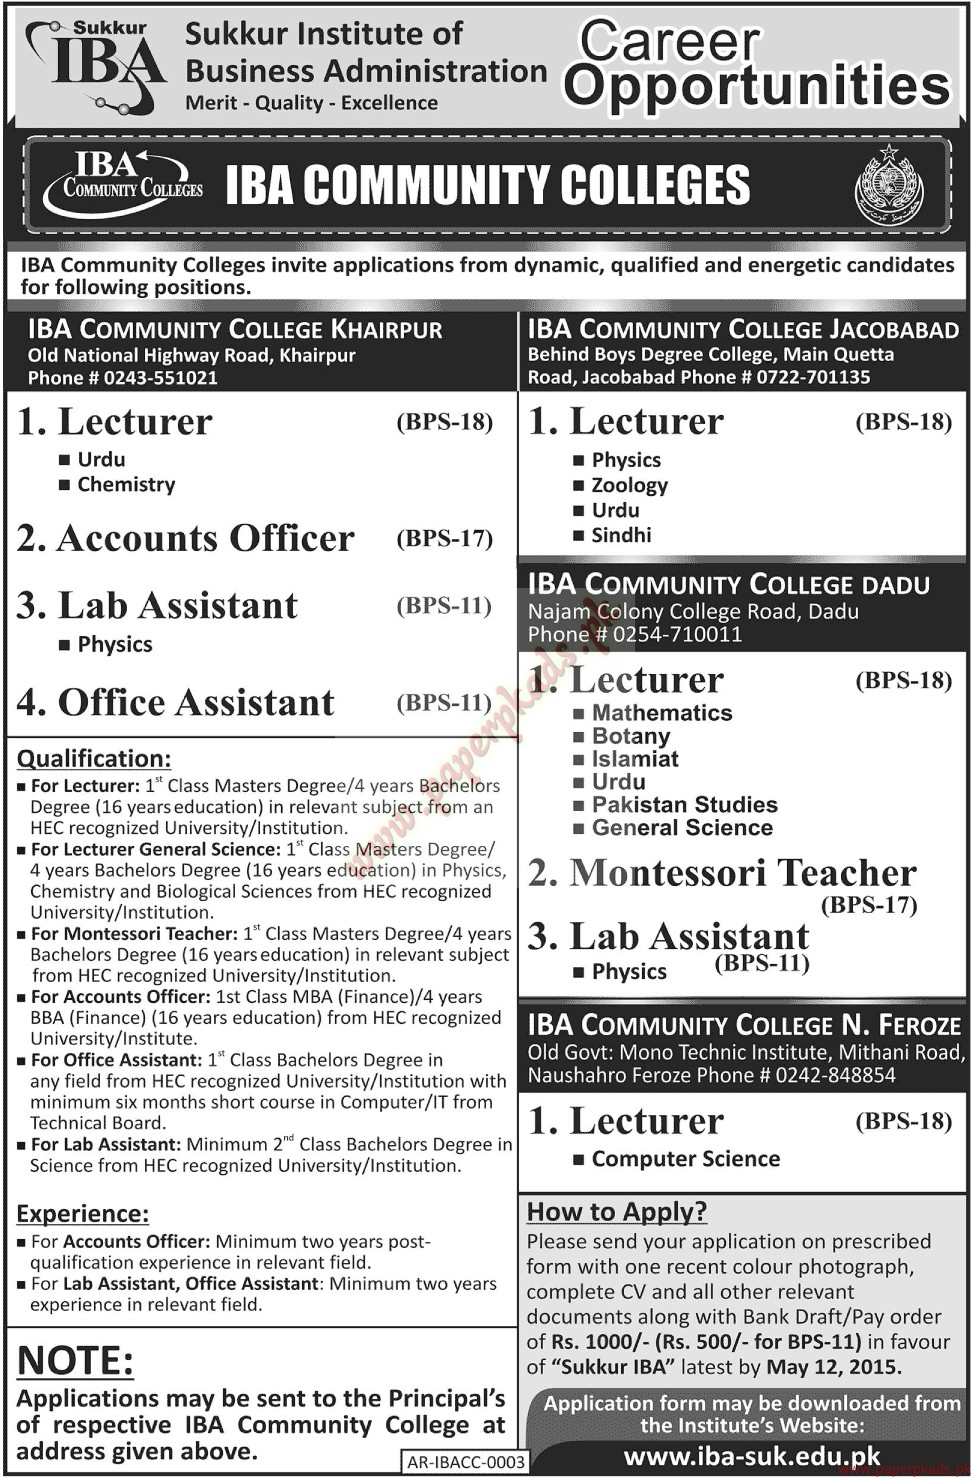 sukkur institute of business administration jobs jang jobs ads sukkur institute of business administration jobs jang jobs ads 26 2015